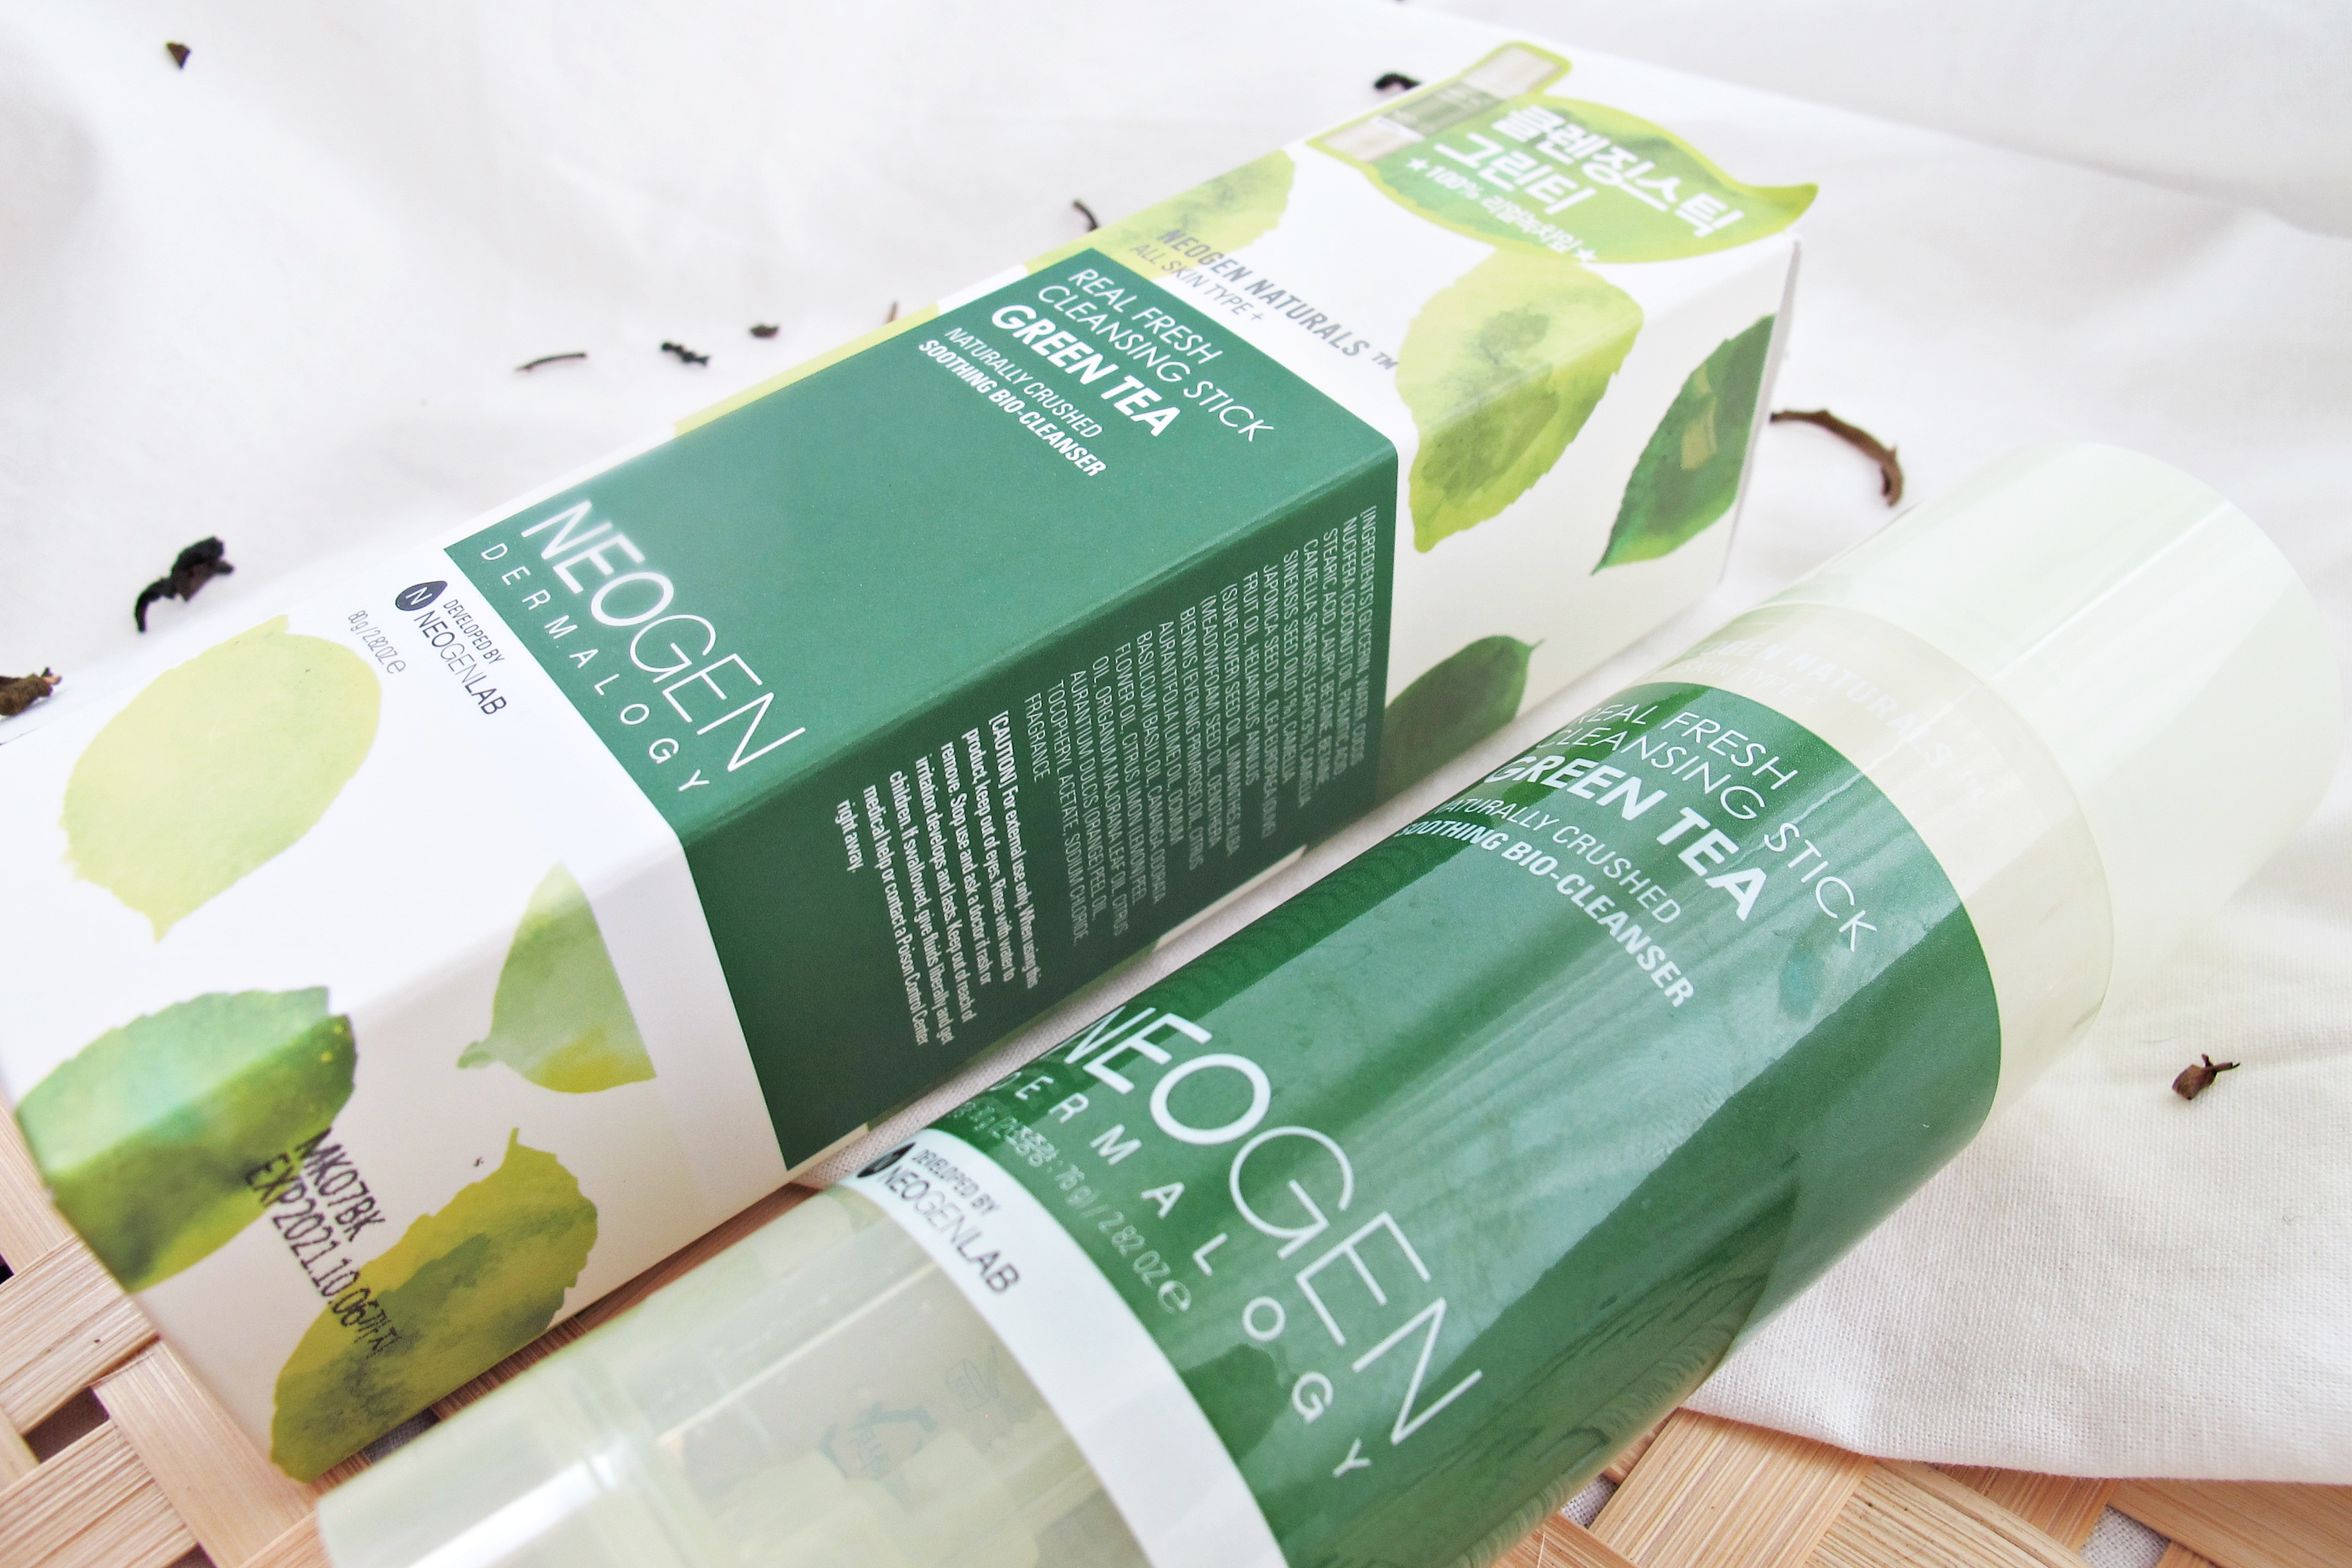 REVIEW | 2-in-1 Cleanse with Neogen Real Fresh Green Tea Cleansing Stick